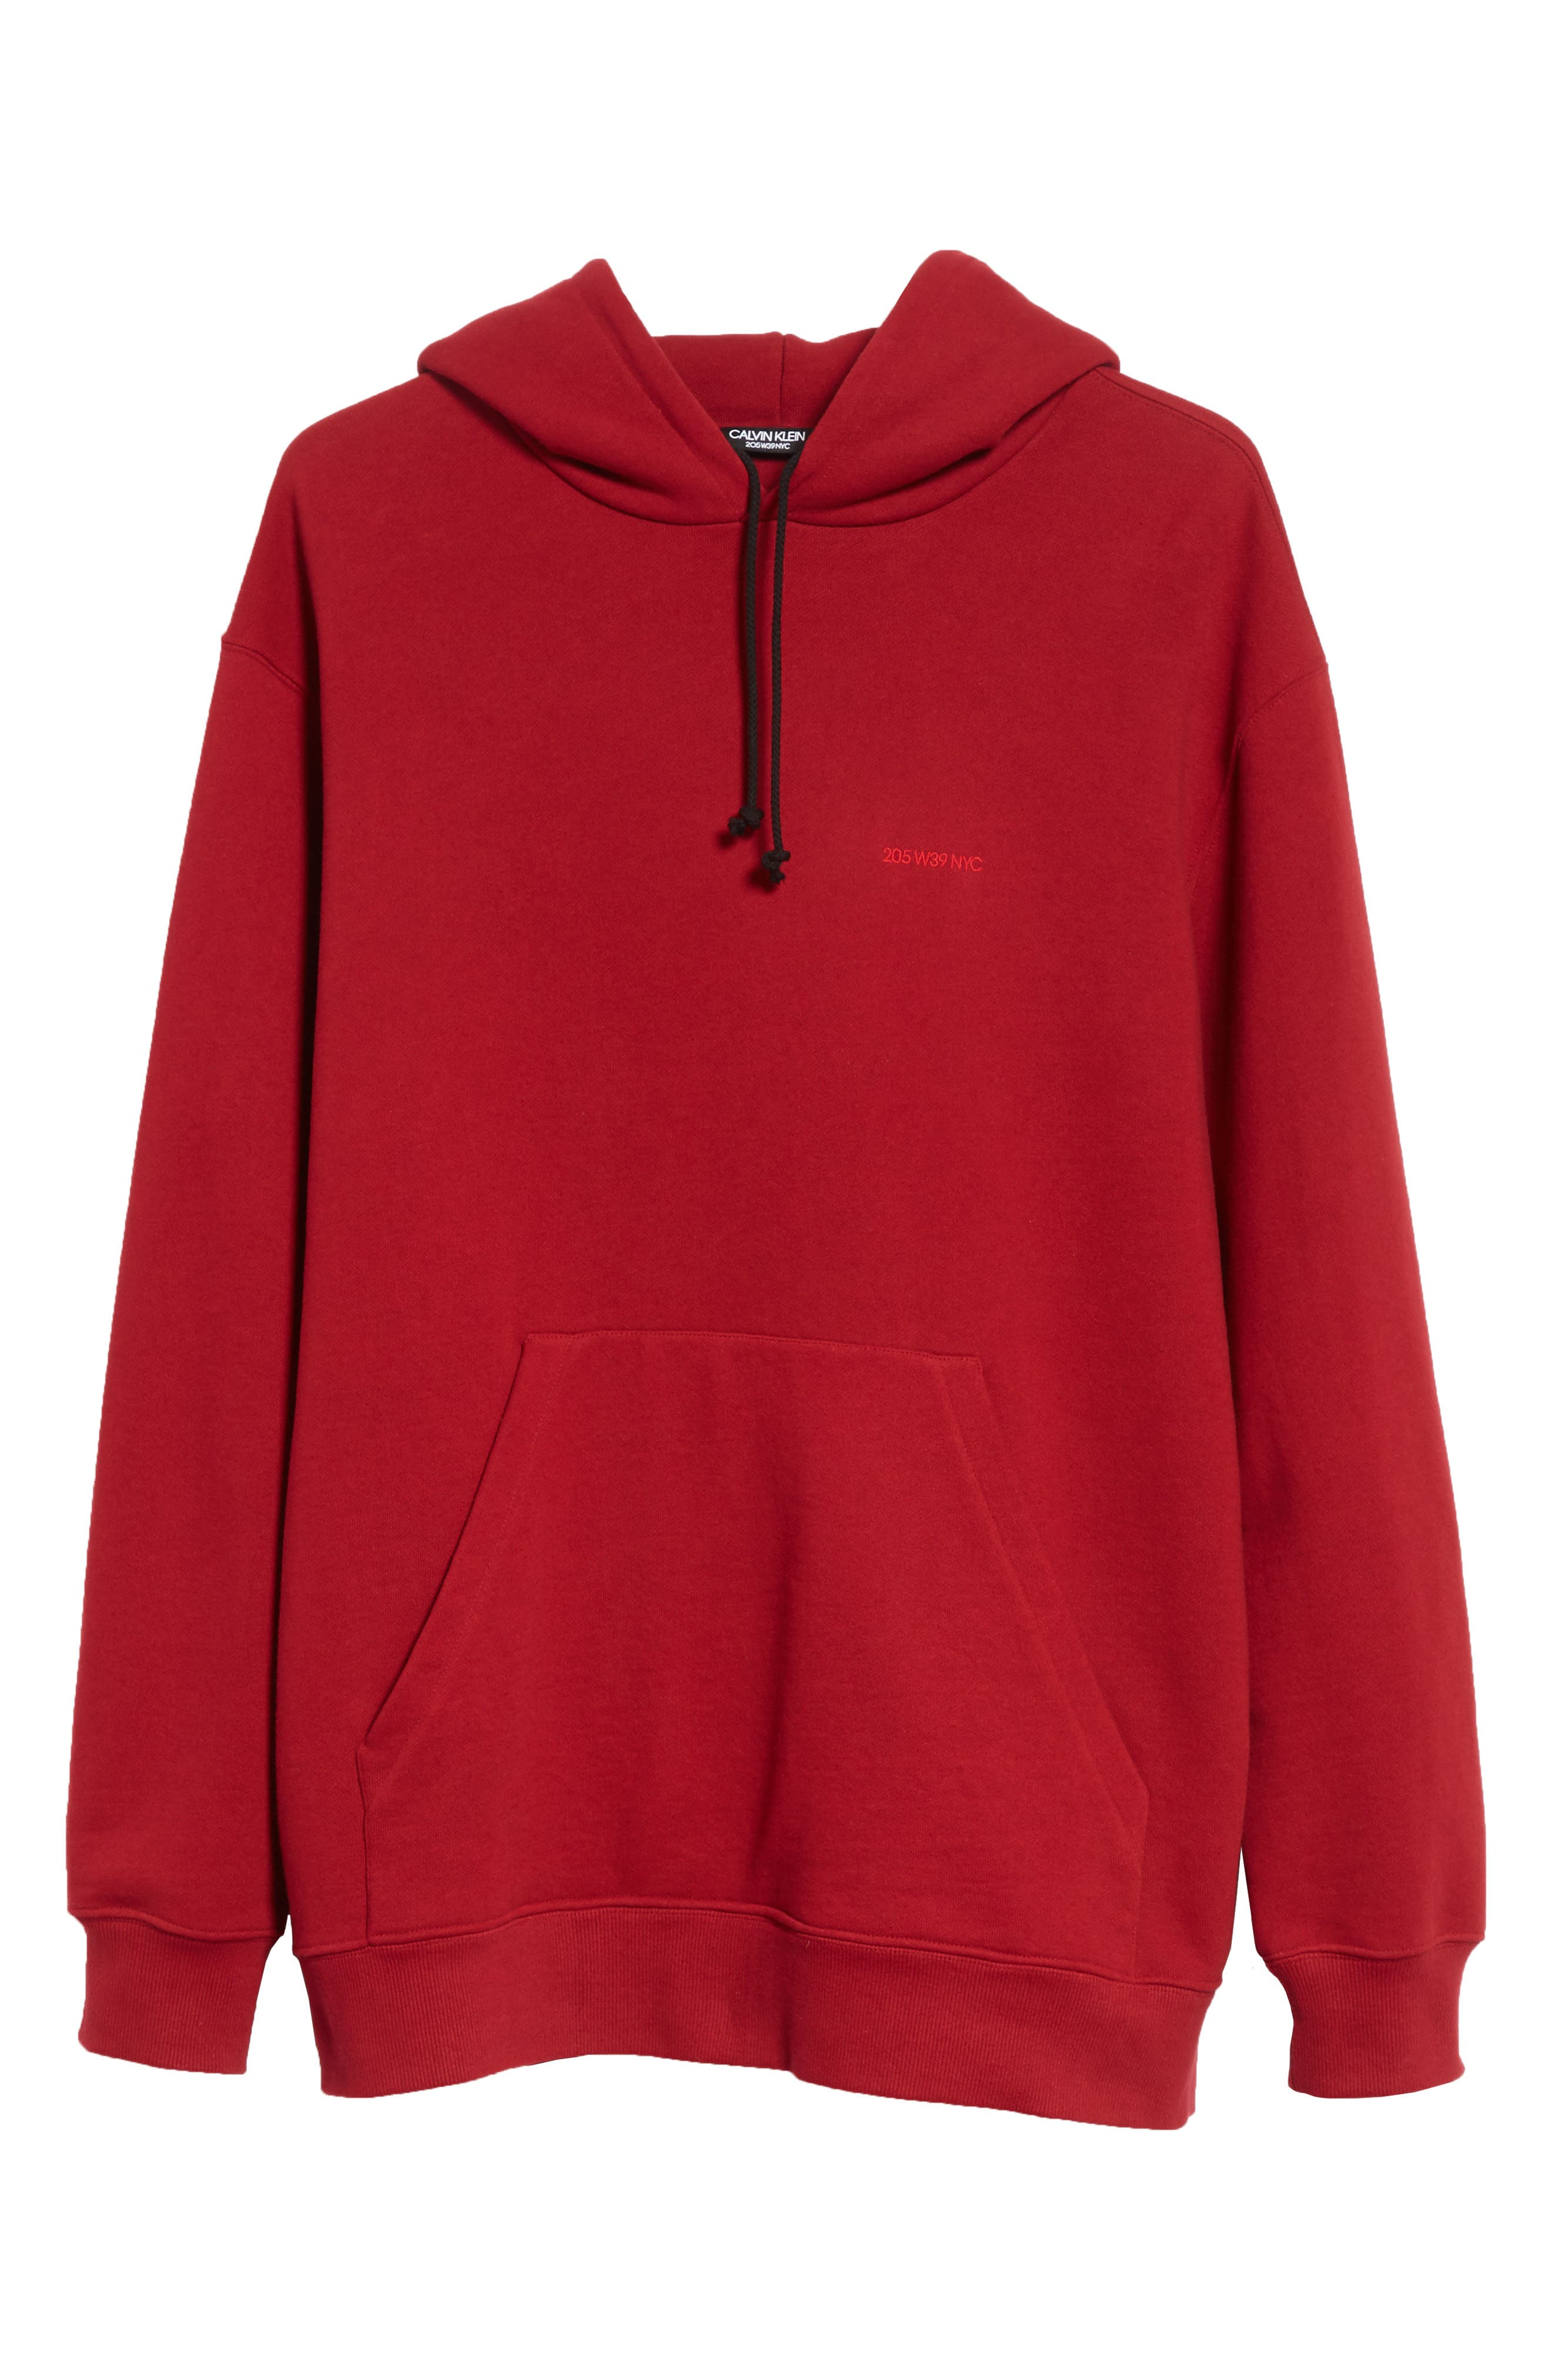 CALVIN KLEIN 205W39NYC,                             Oversize Hoodie,                             Alternate thumbnail 6, color,                             602